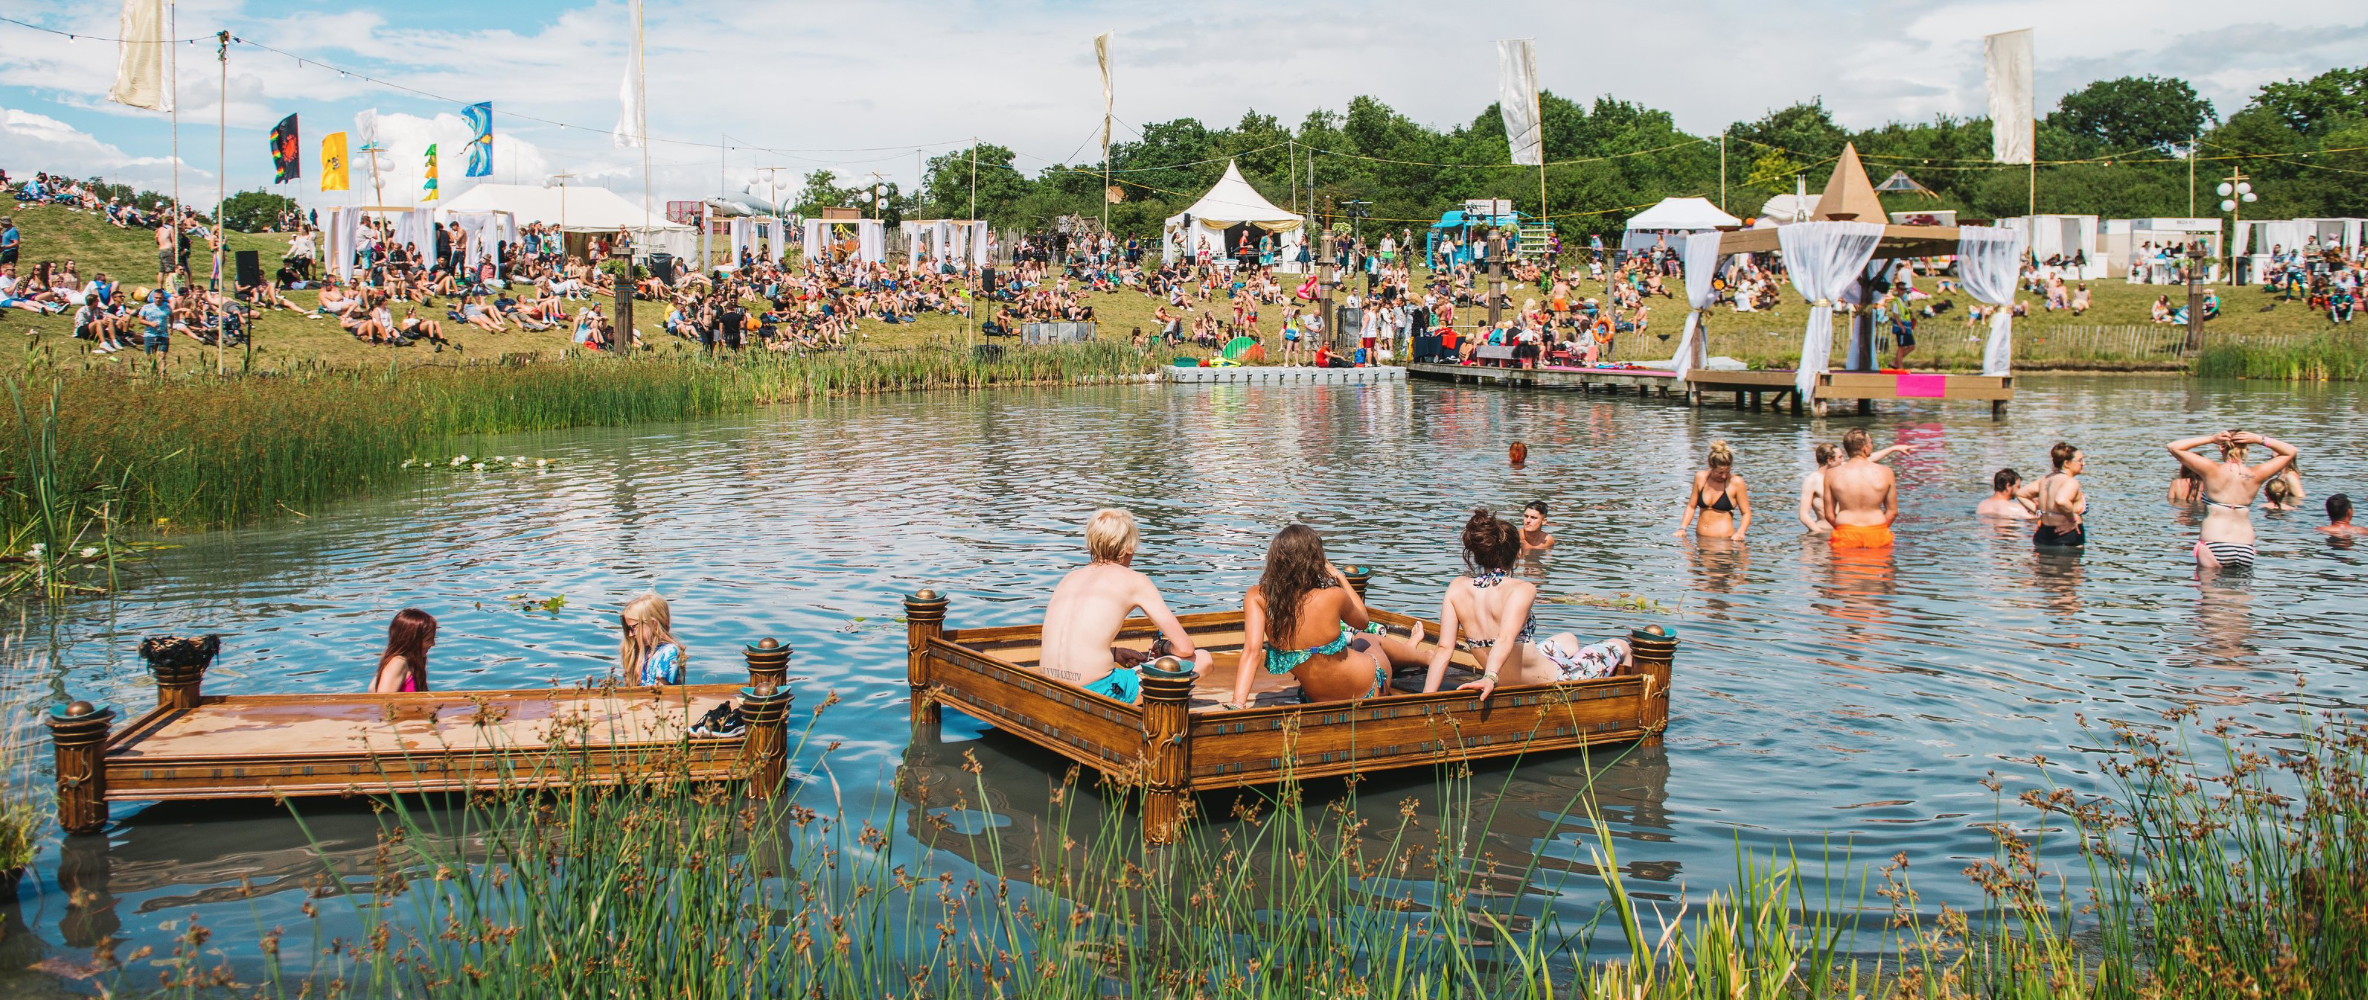 The Lido in the Sanctuary at Secret Garden Party.